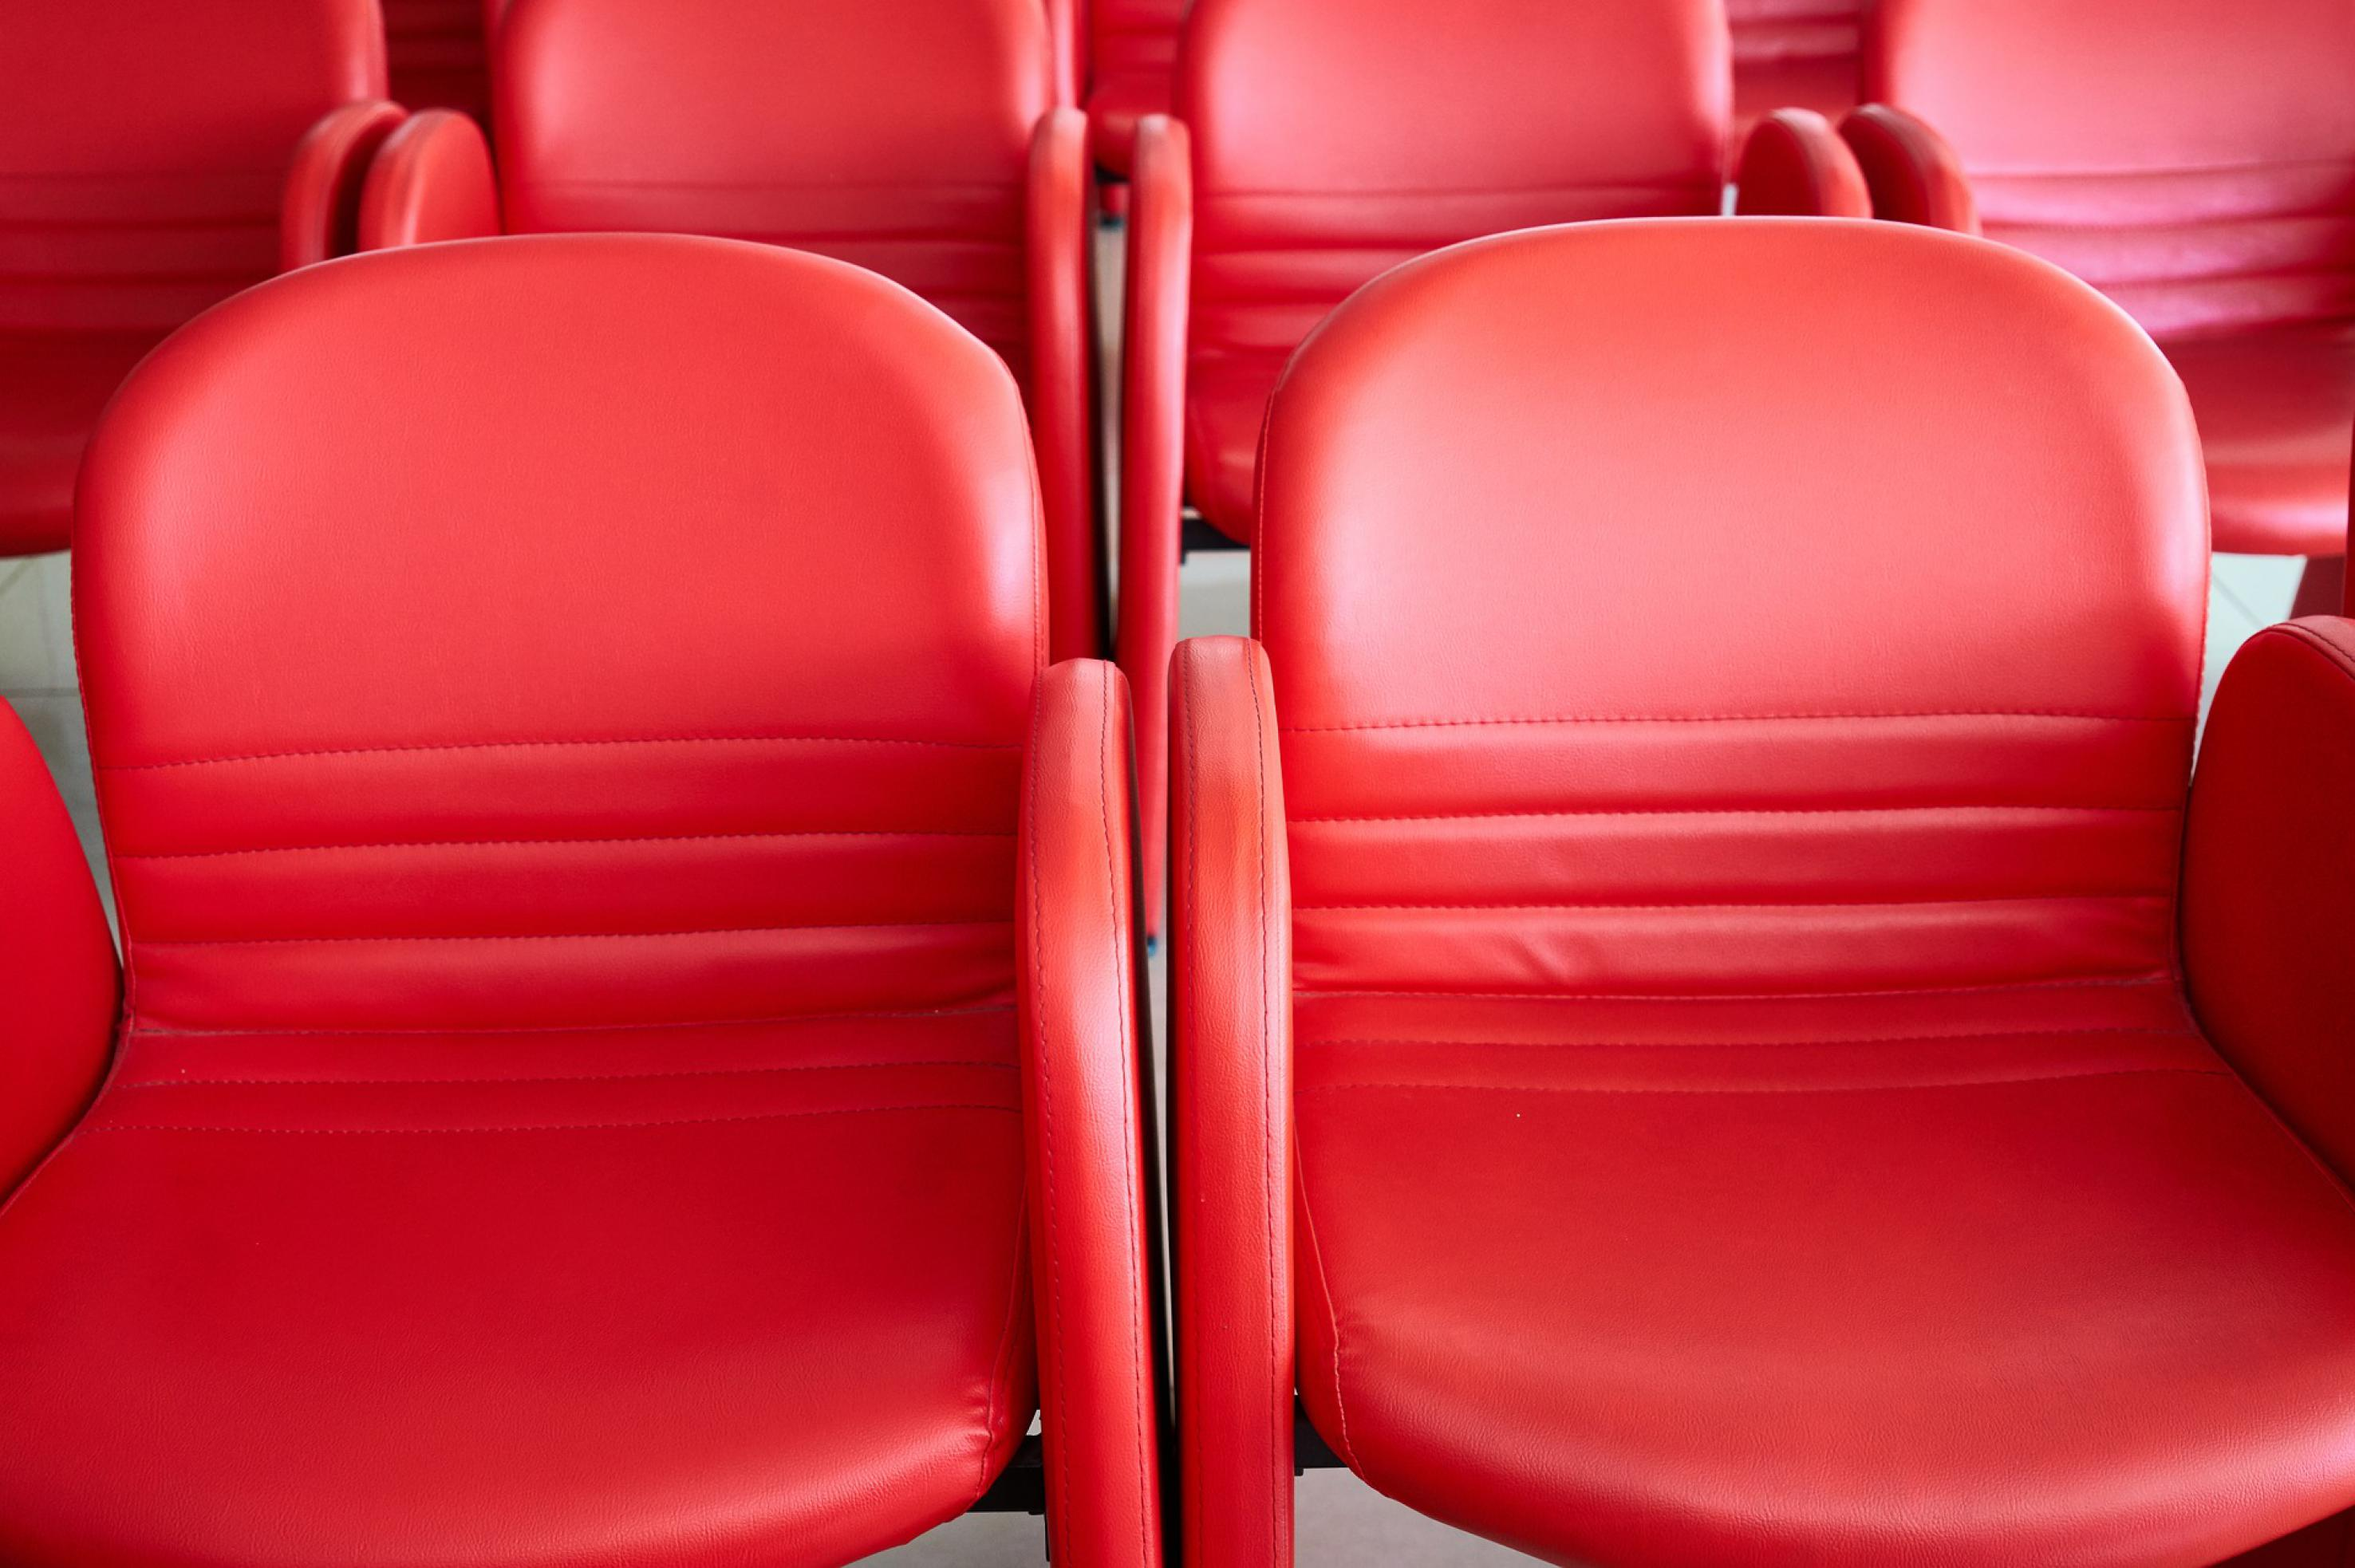 Image of red chairs